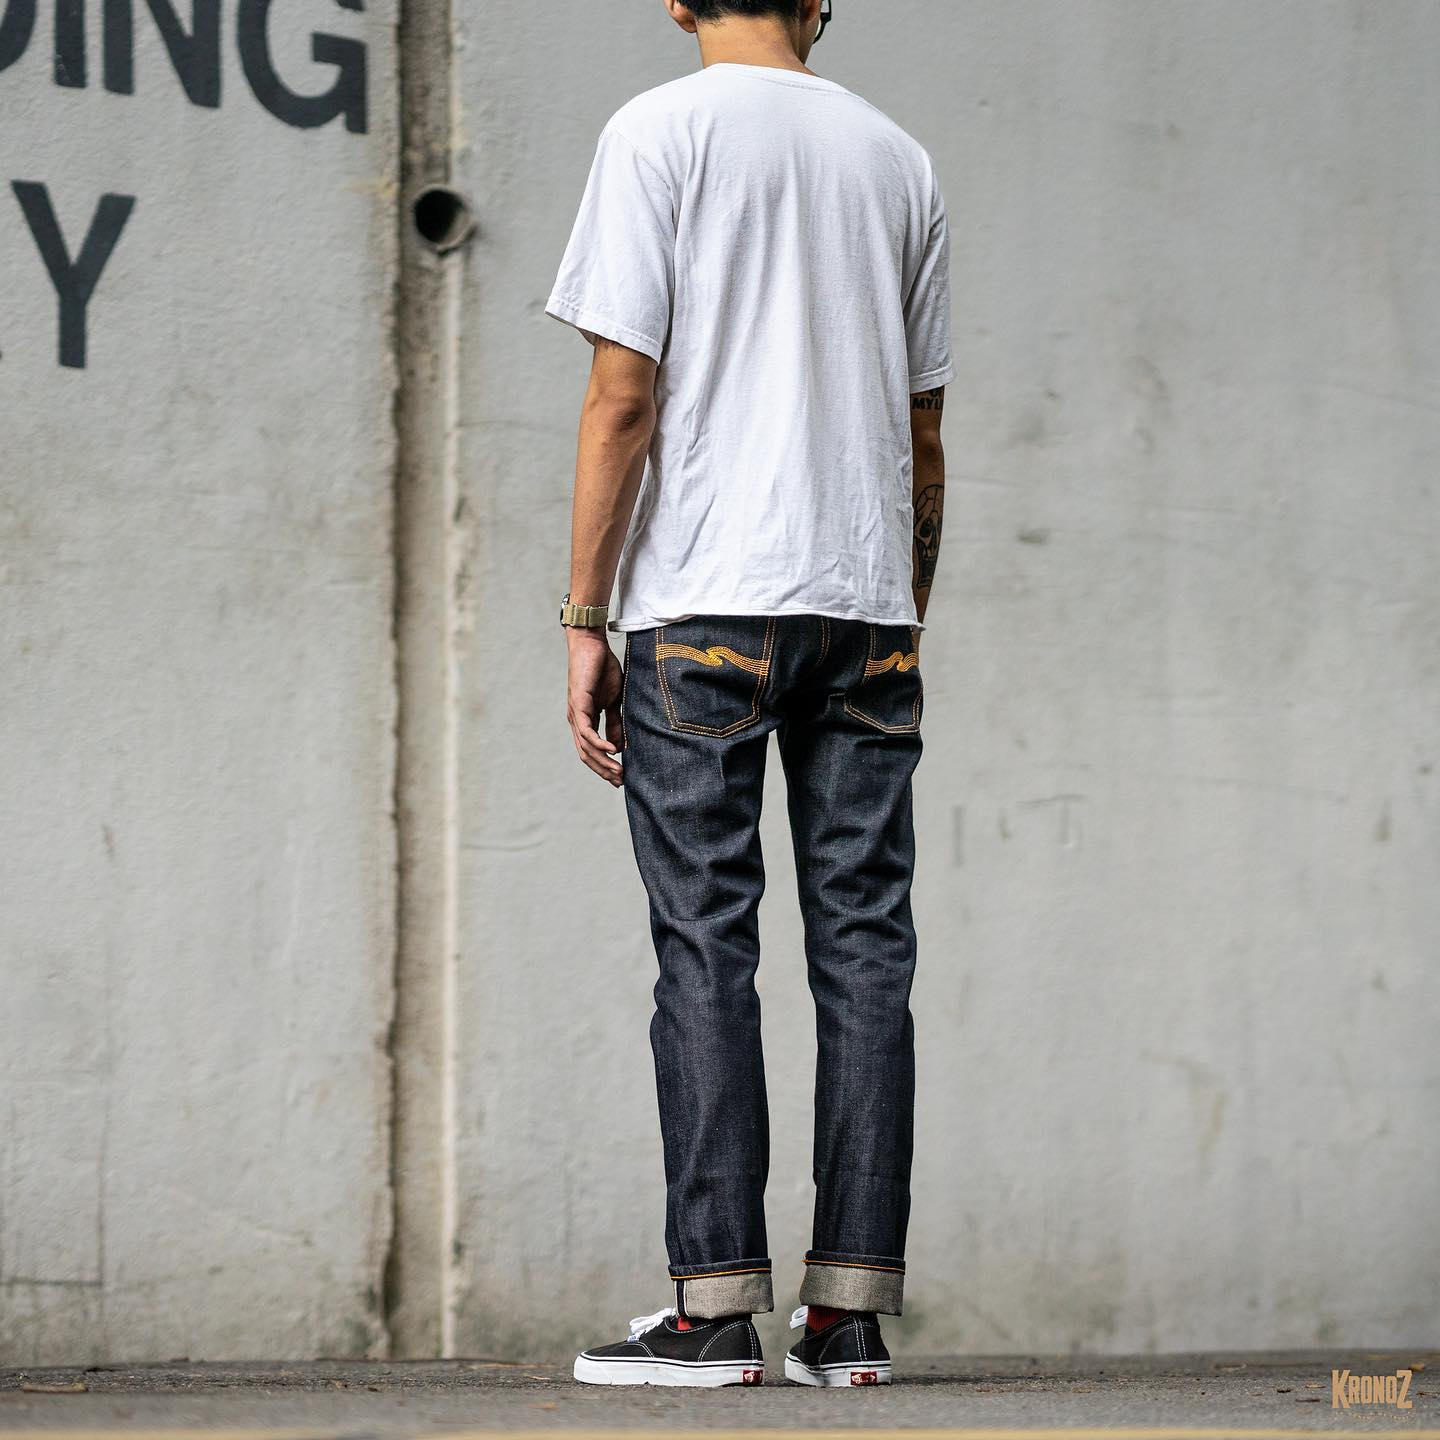 c900580f58c778 Nudie Jeans® | 100% Organic Denim Collection | Official Site - Nudie ...